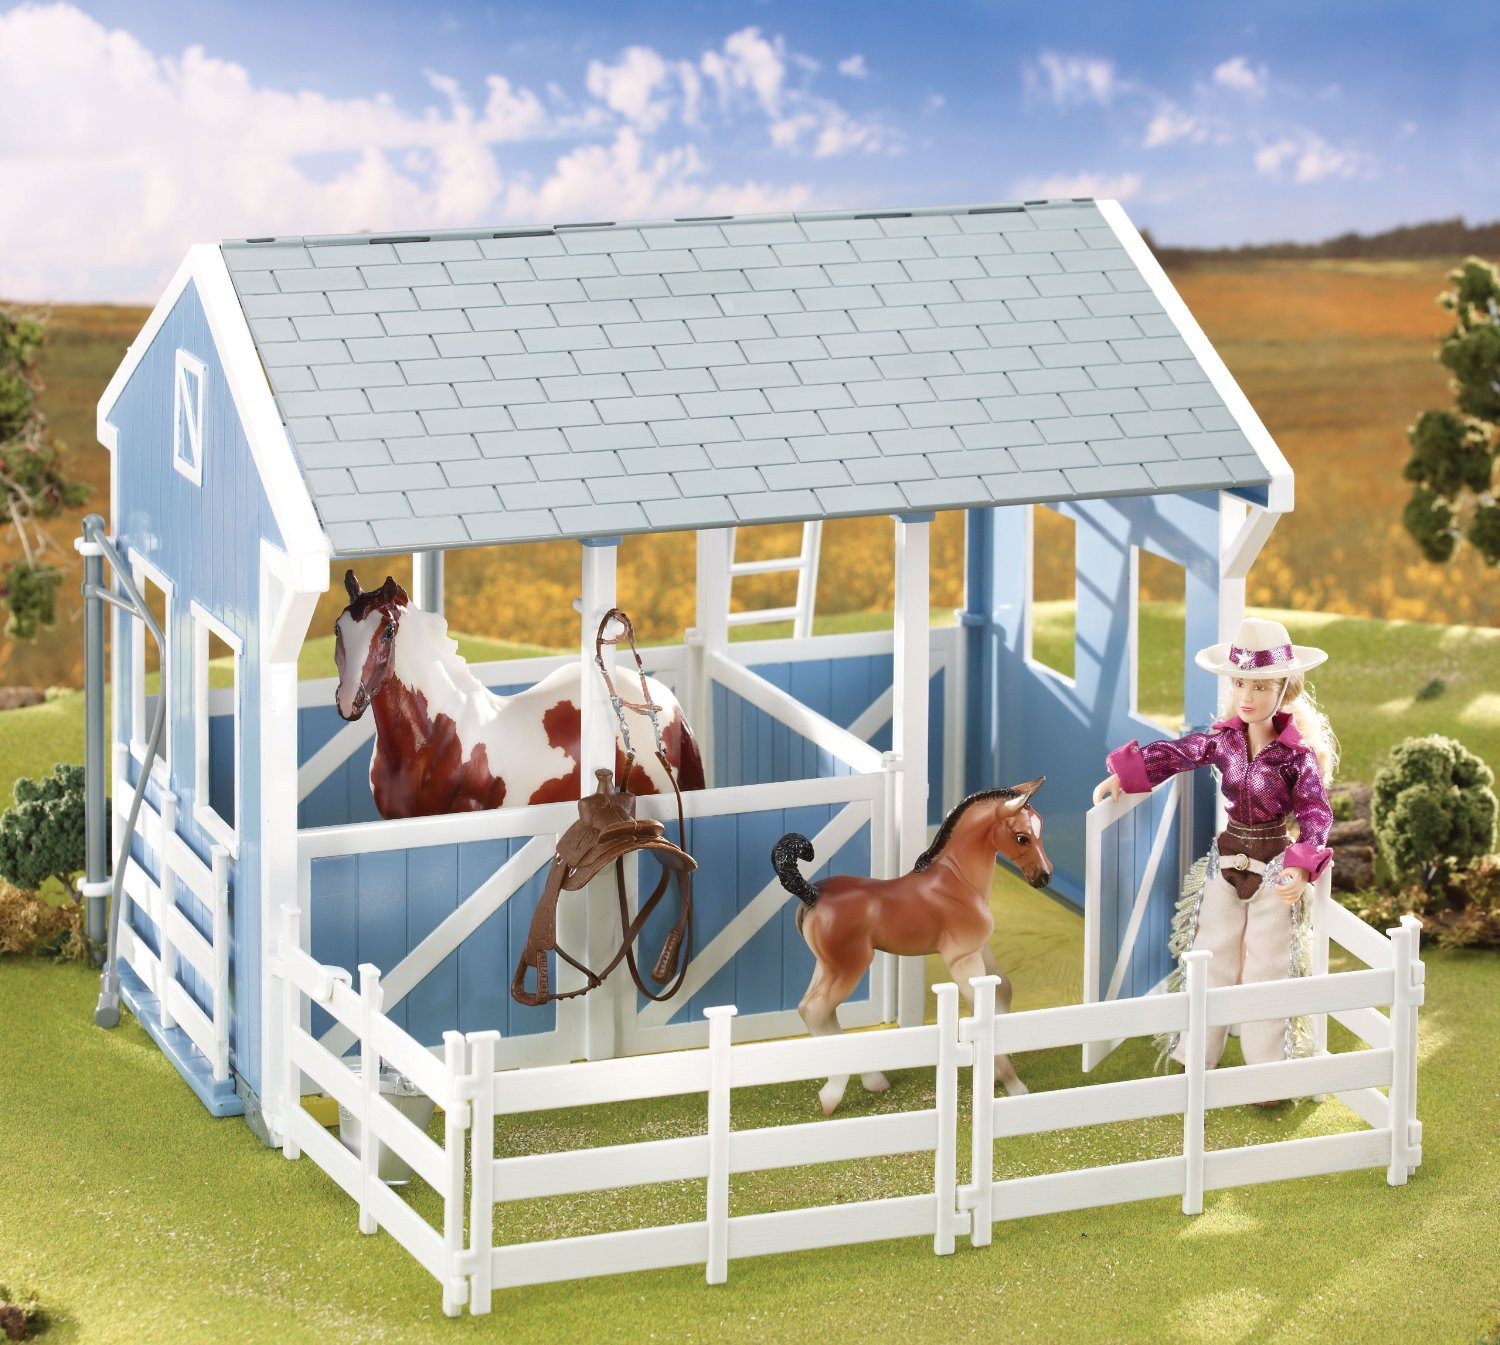 Breyer Classics Country Stable Gift Idea for Girls 6 7 8